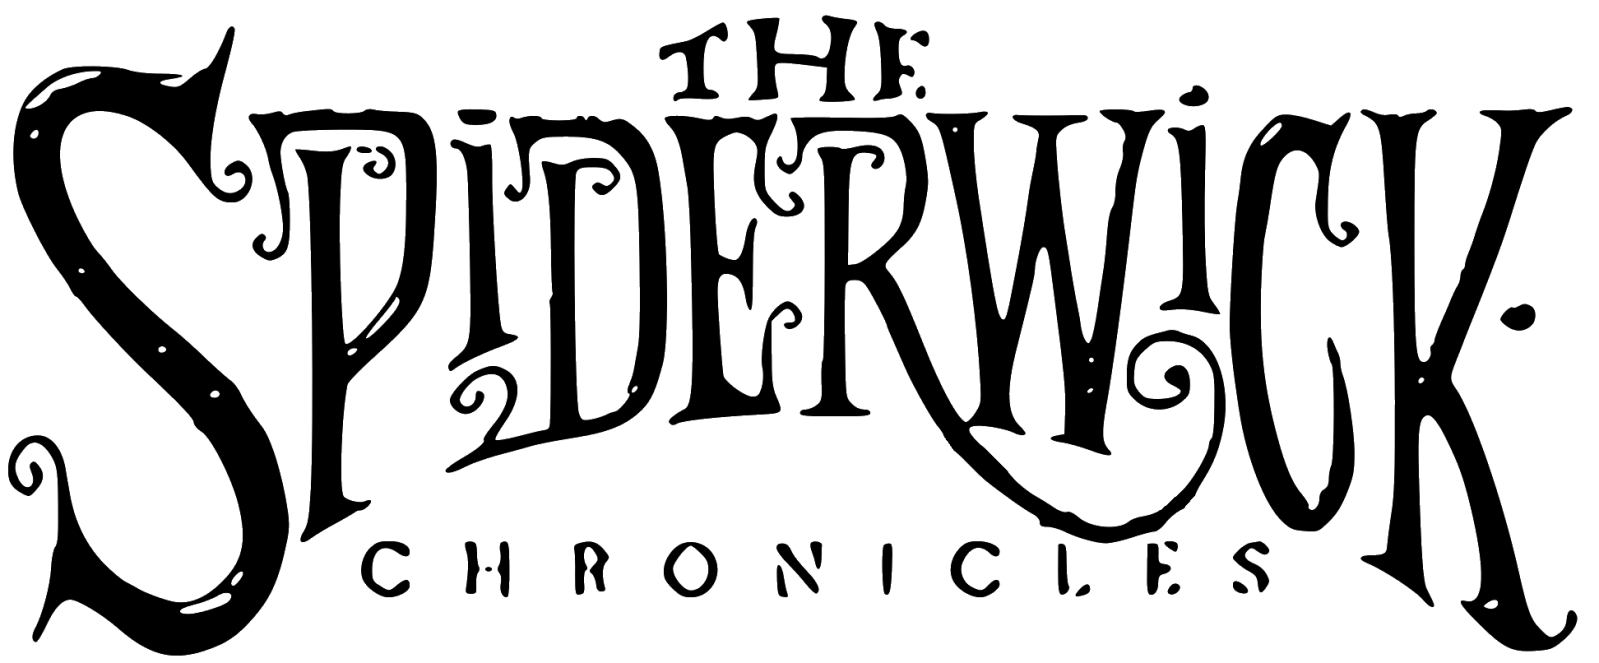 File:The Spiderwick Chronicles logotype.png - Wikimedia Commons